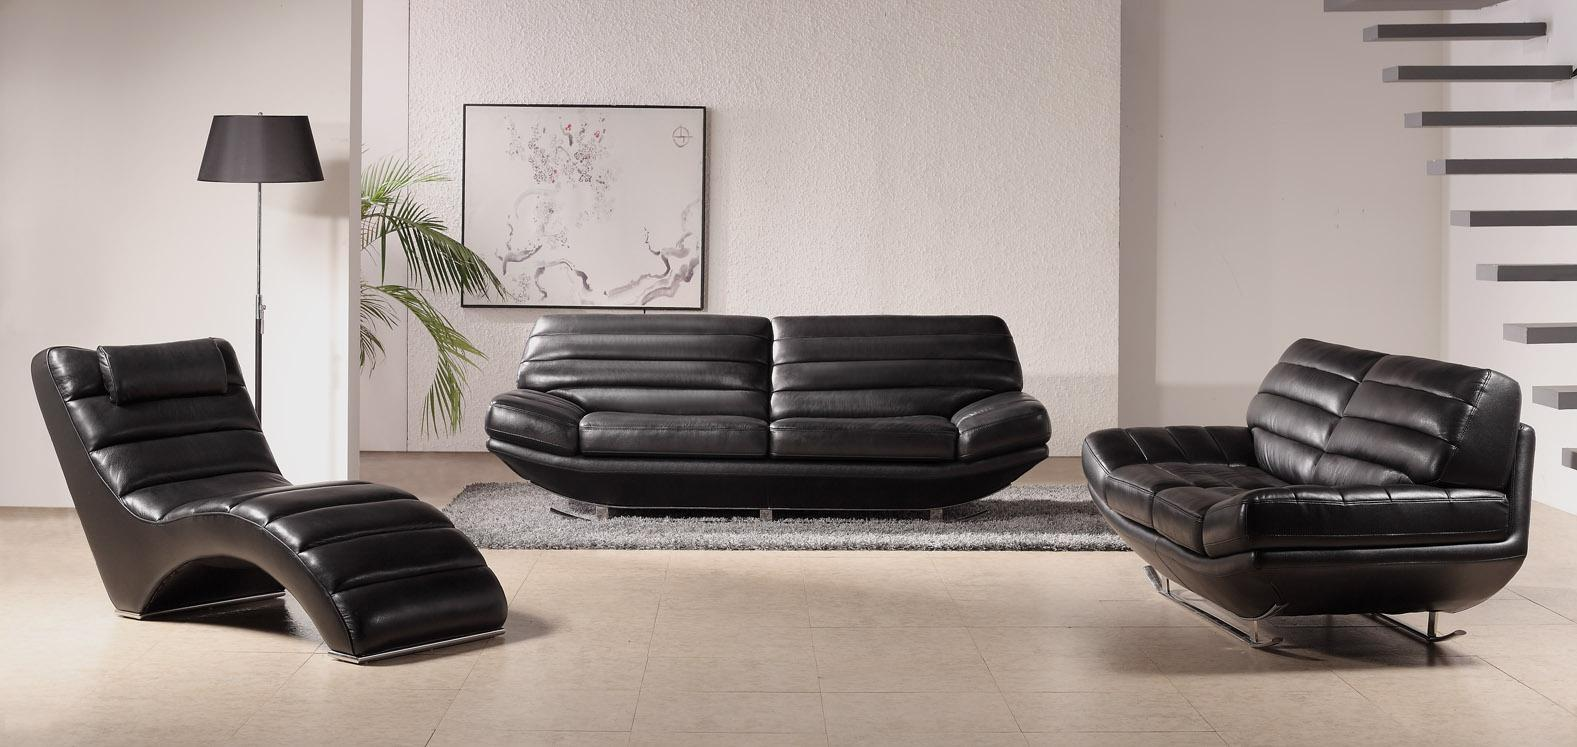 Know about types of couches and sofas my decorative for Contemporary living room chairs